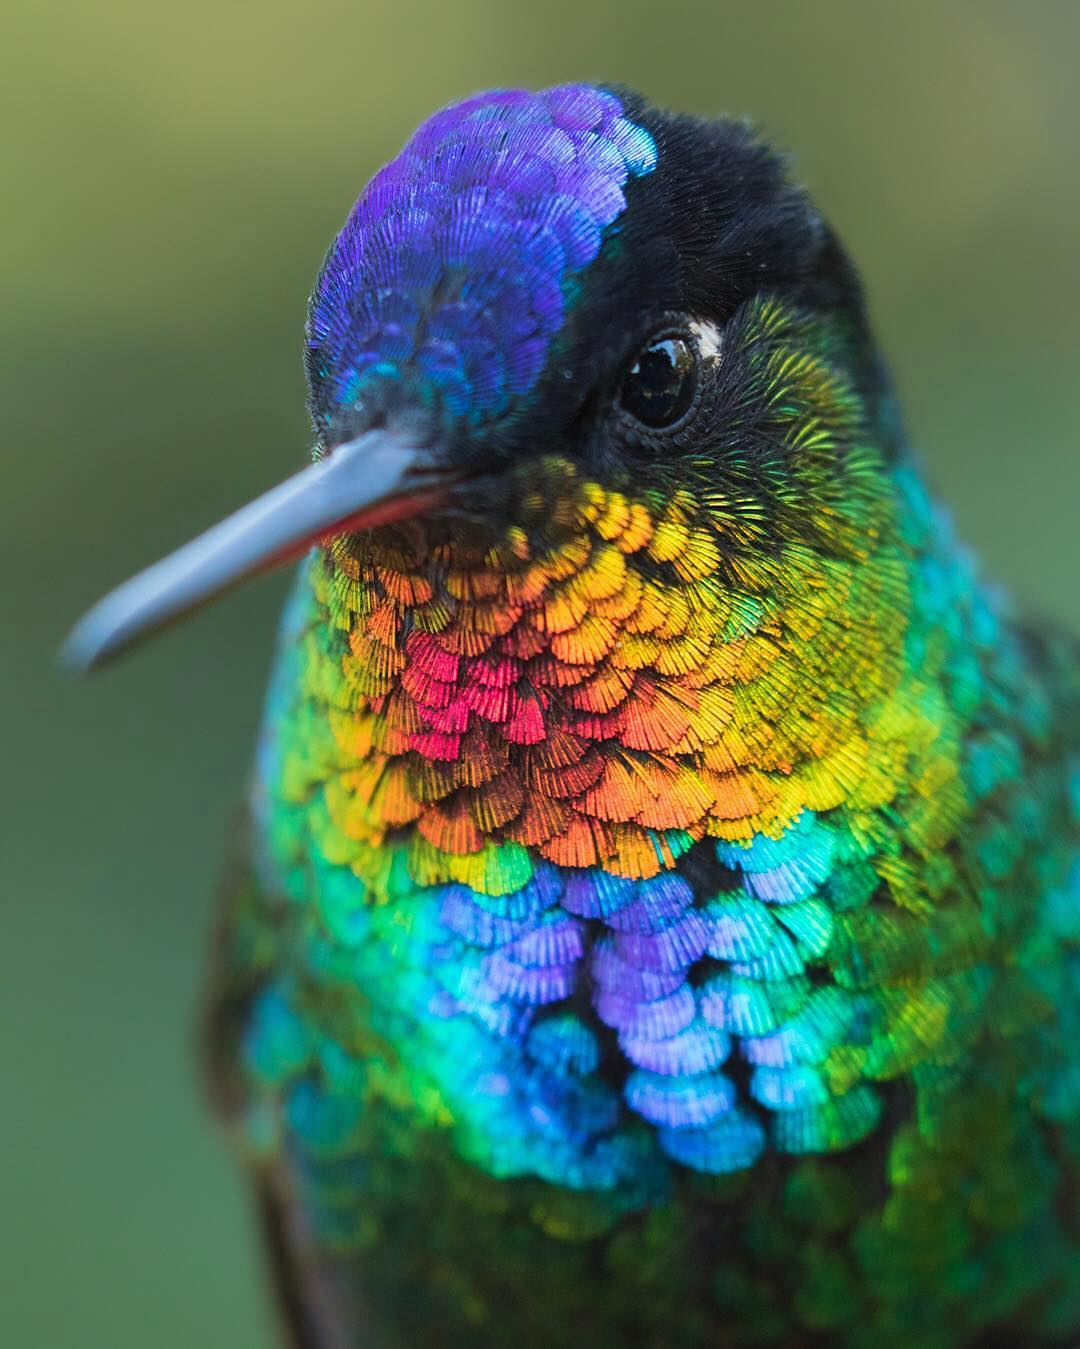 Amazing colors of this humming bird